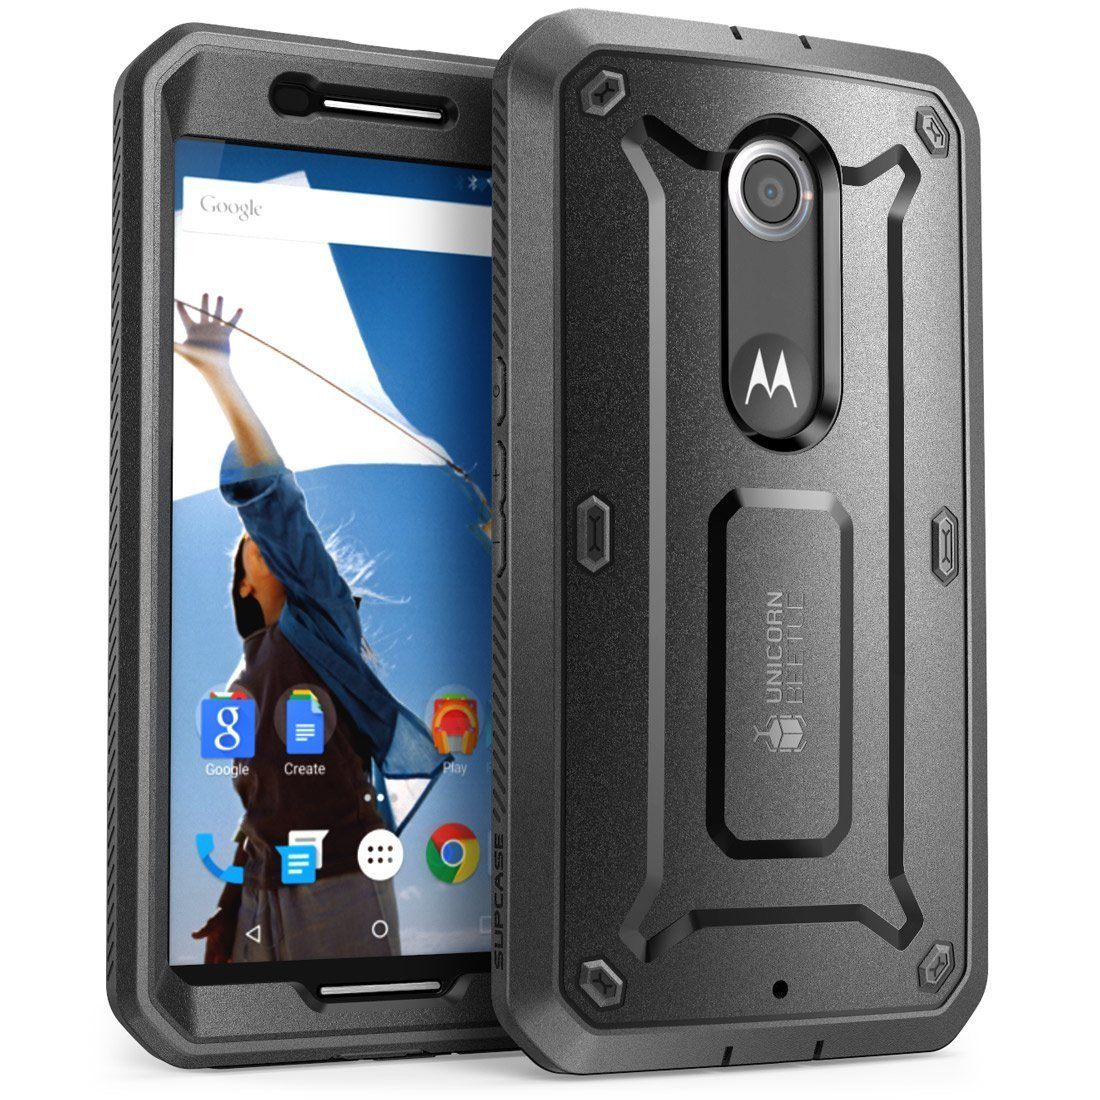 SUPCASE Google Nexus 6 Case - Unicorn Beetle Pro Series Protective Cover with Built-in Screen -Black/Black